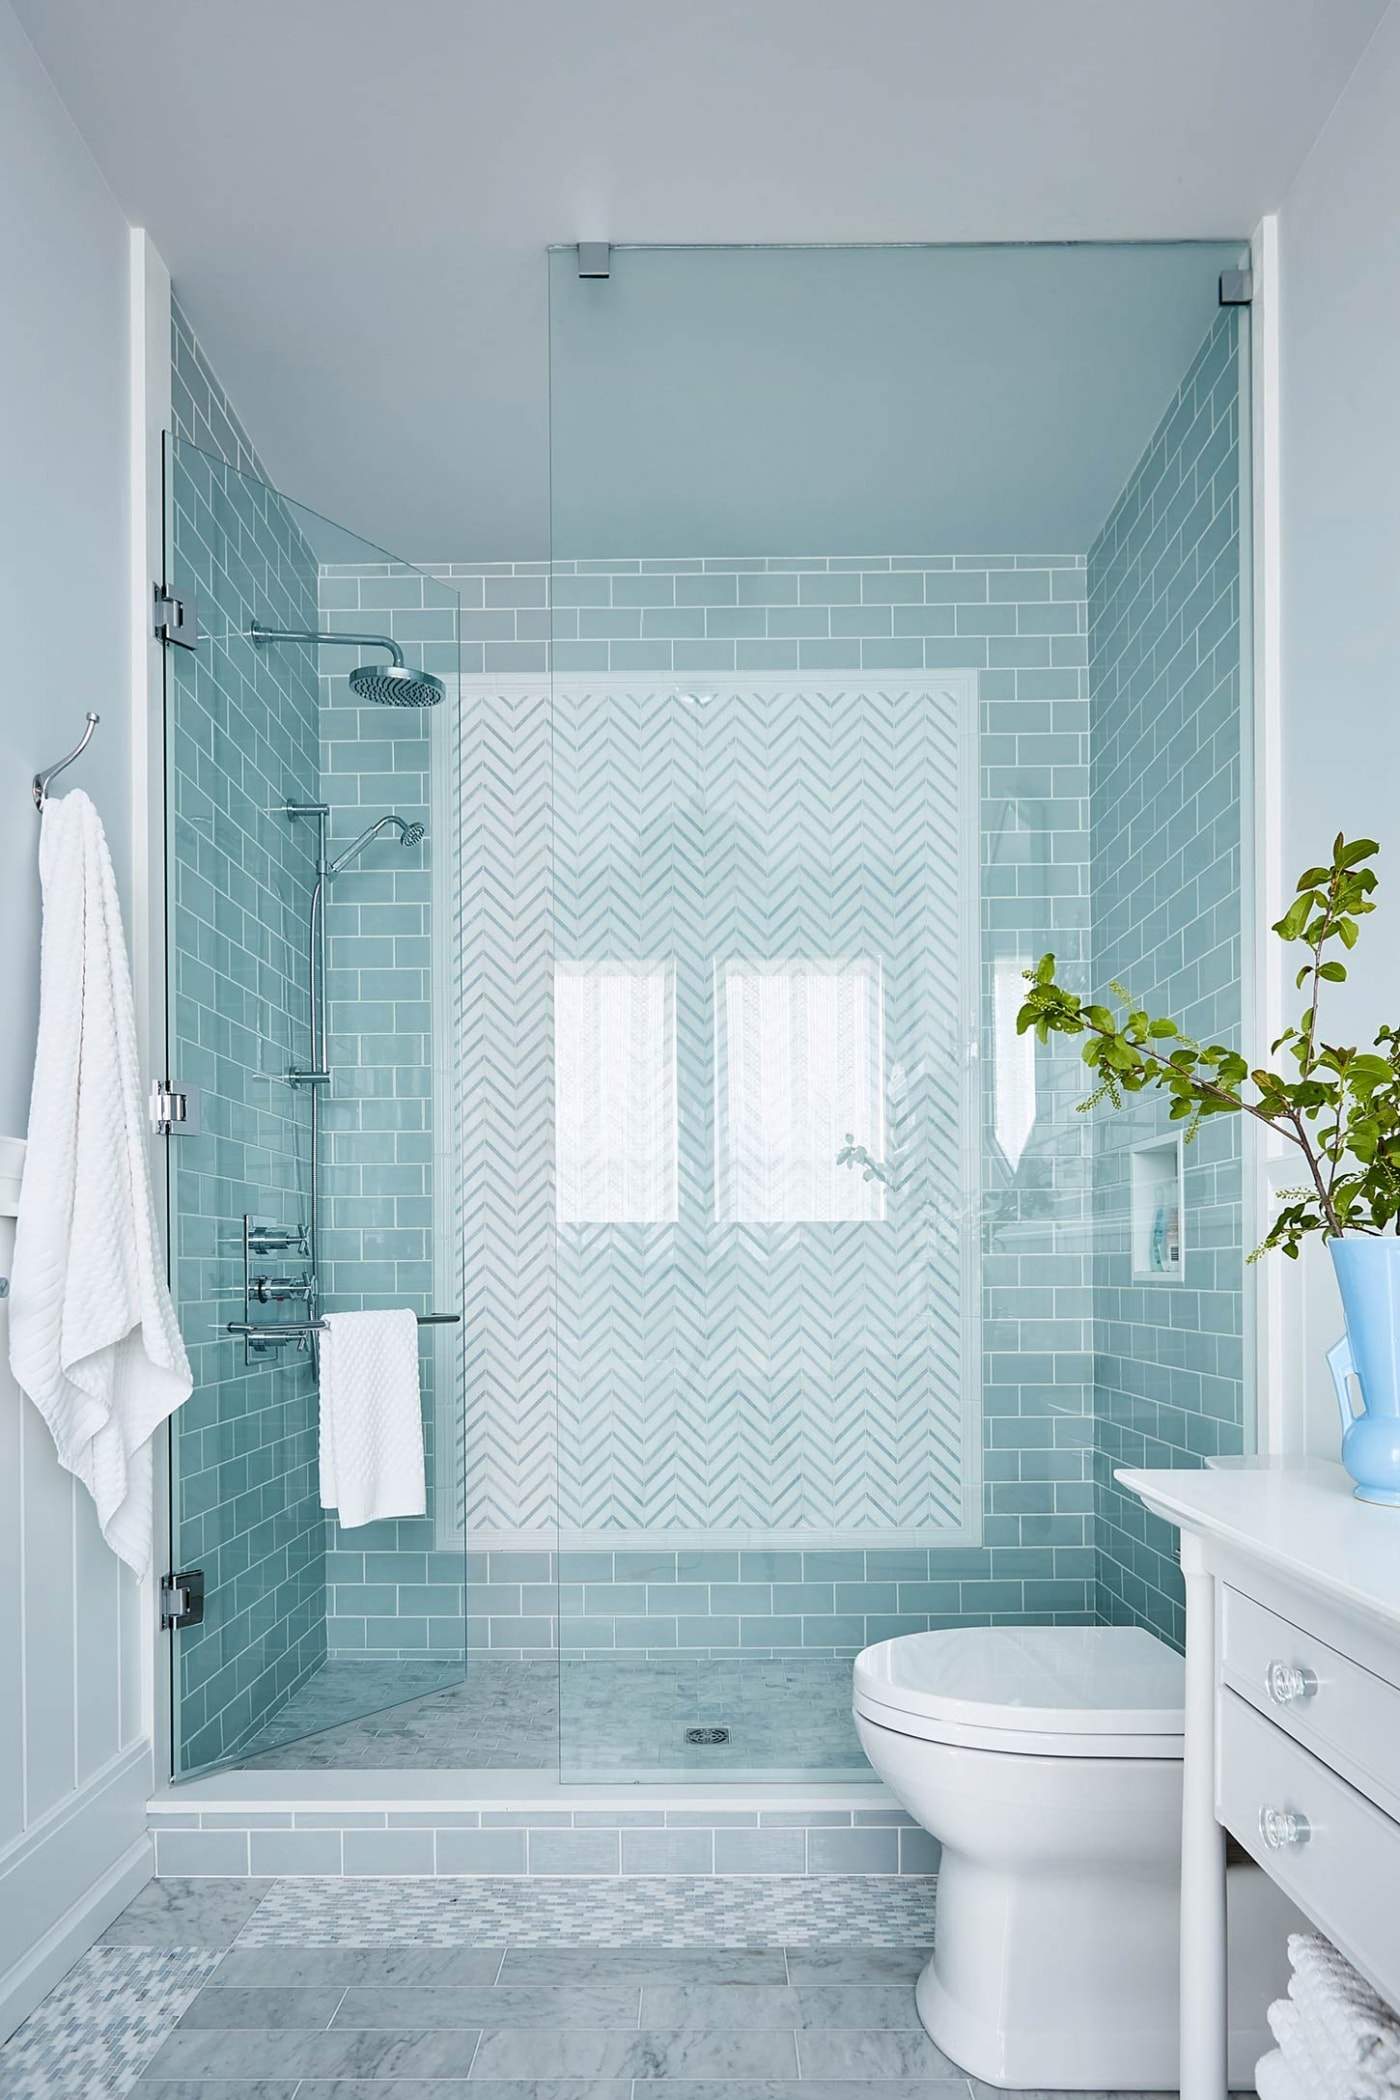 Glass Standup Shower with glass wall and bright blue subway tile - #Sarah Richardson #turquoise